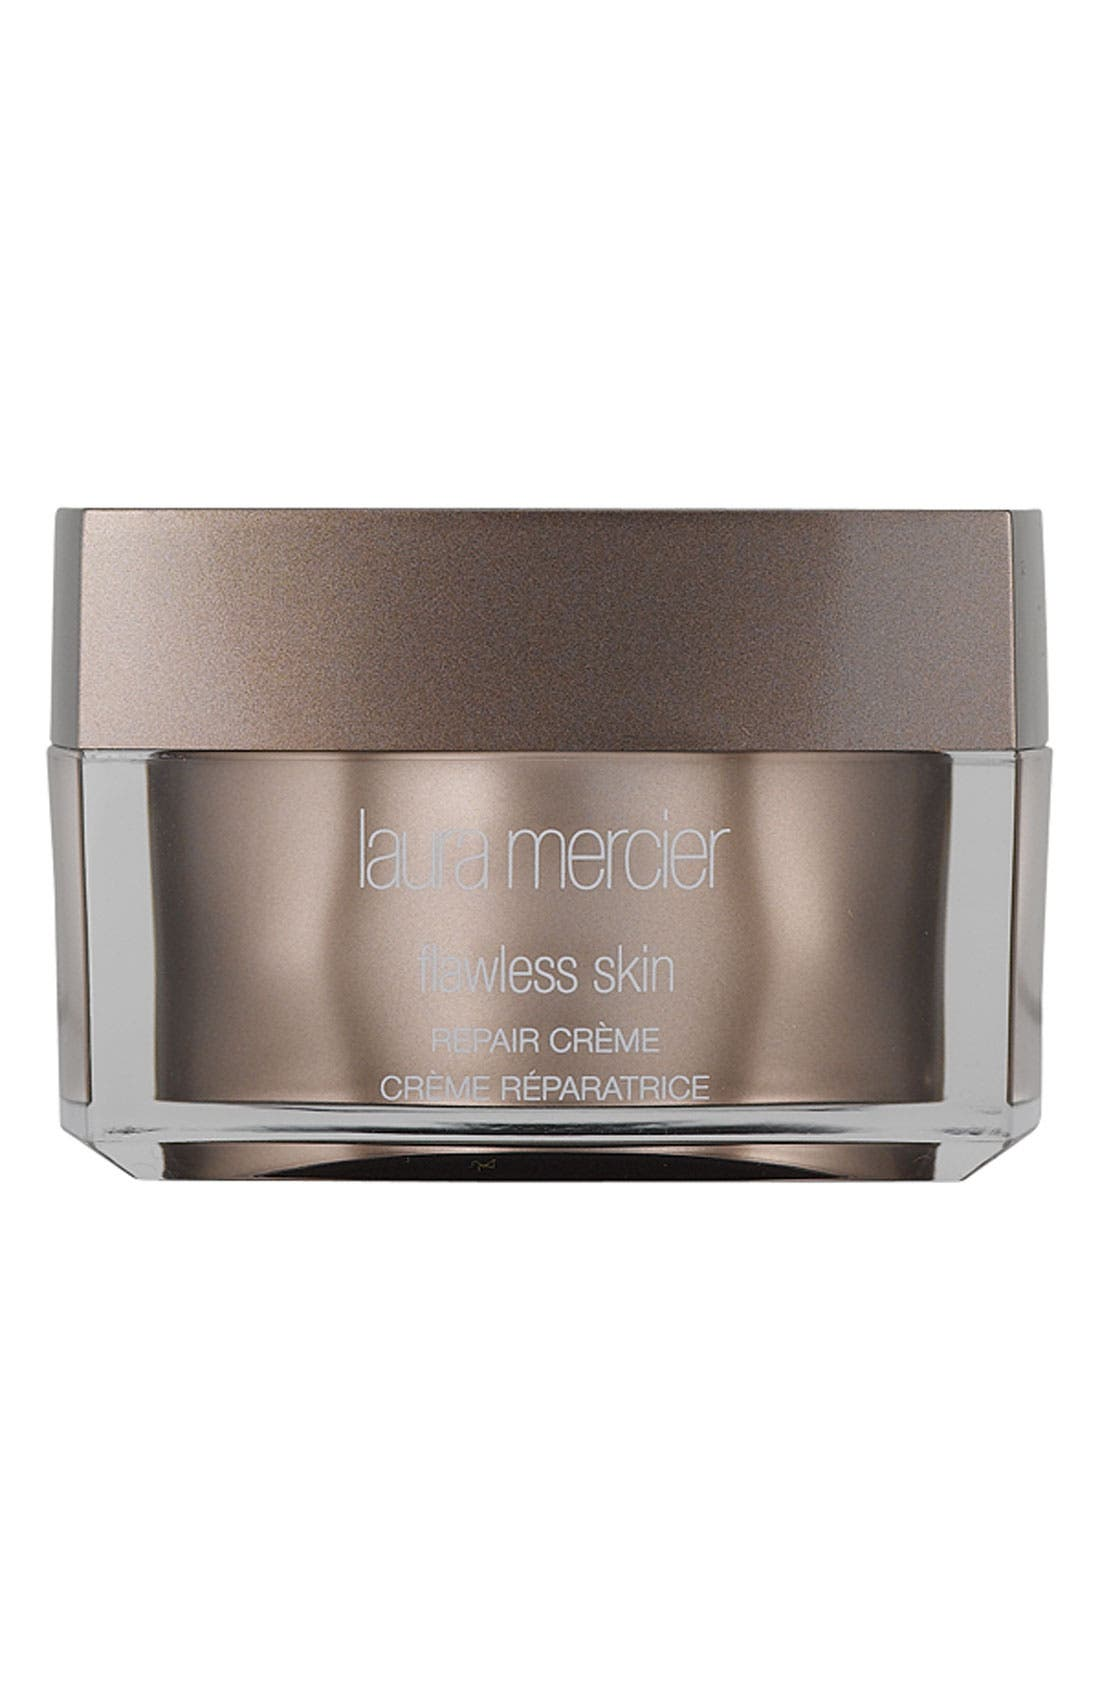 'Flawless Skin' Repair Crème,                         Main,                         color, NO COLOR